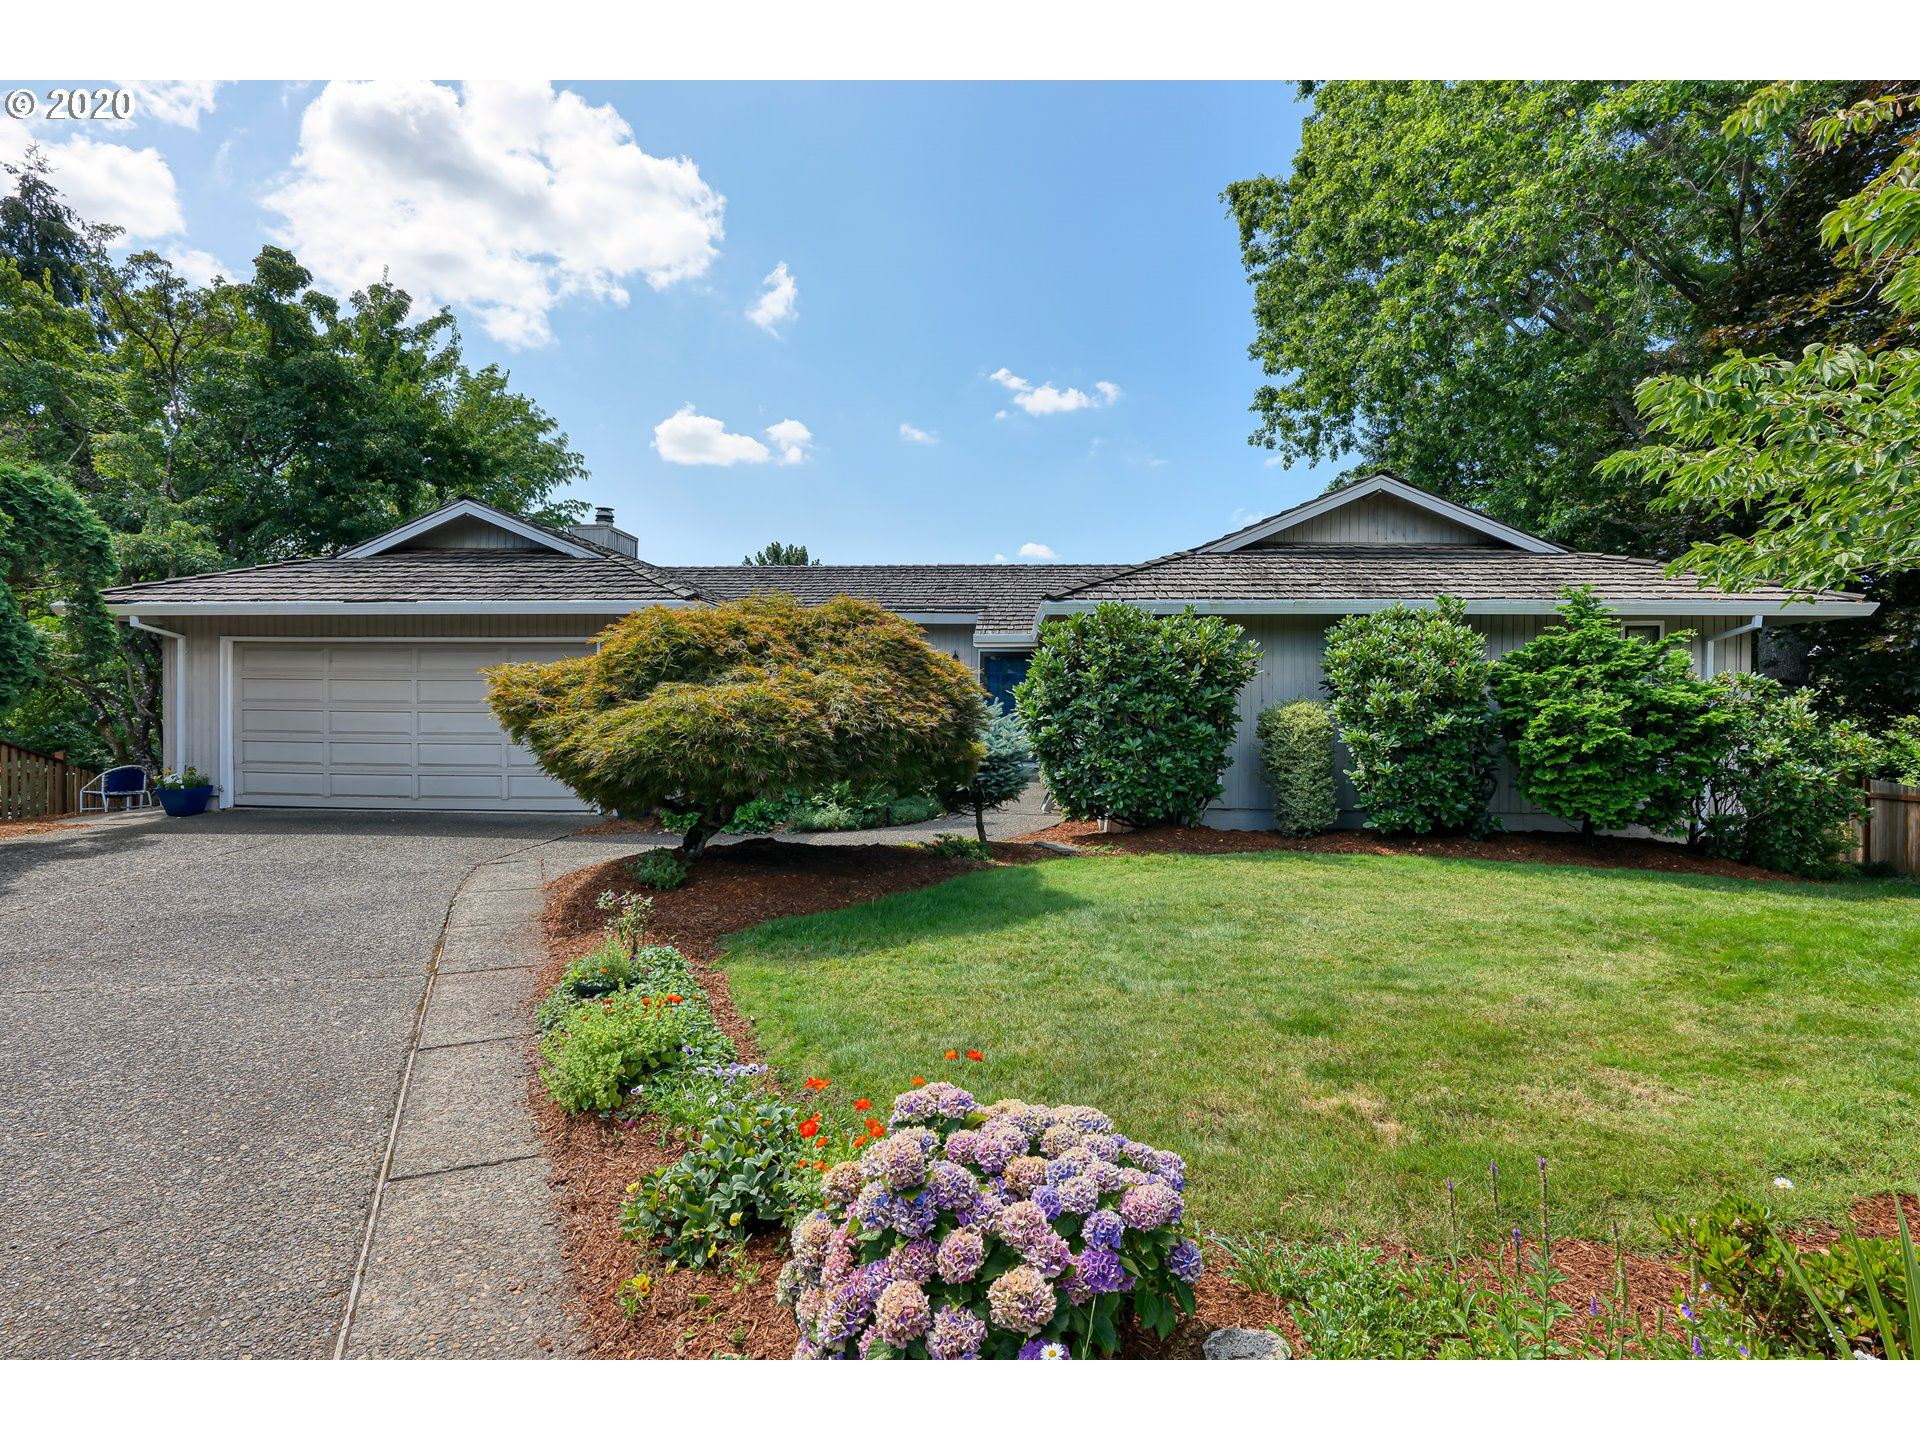 8970 NW TORREY VIEW CT, Portland, OR 97229 - MLS#: 20617876